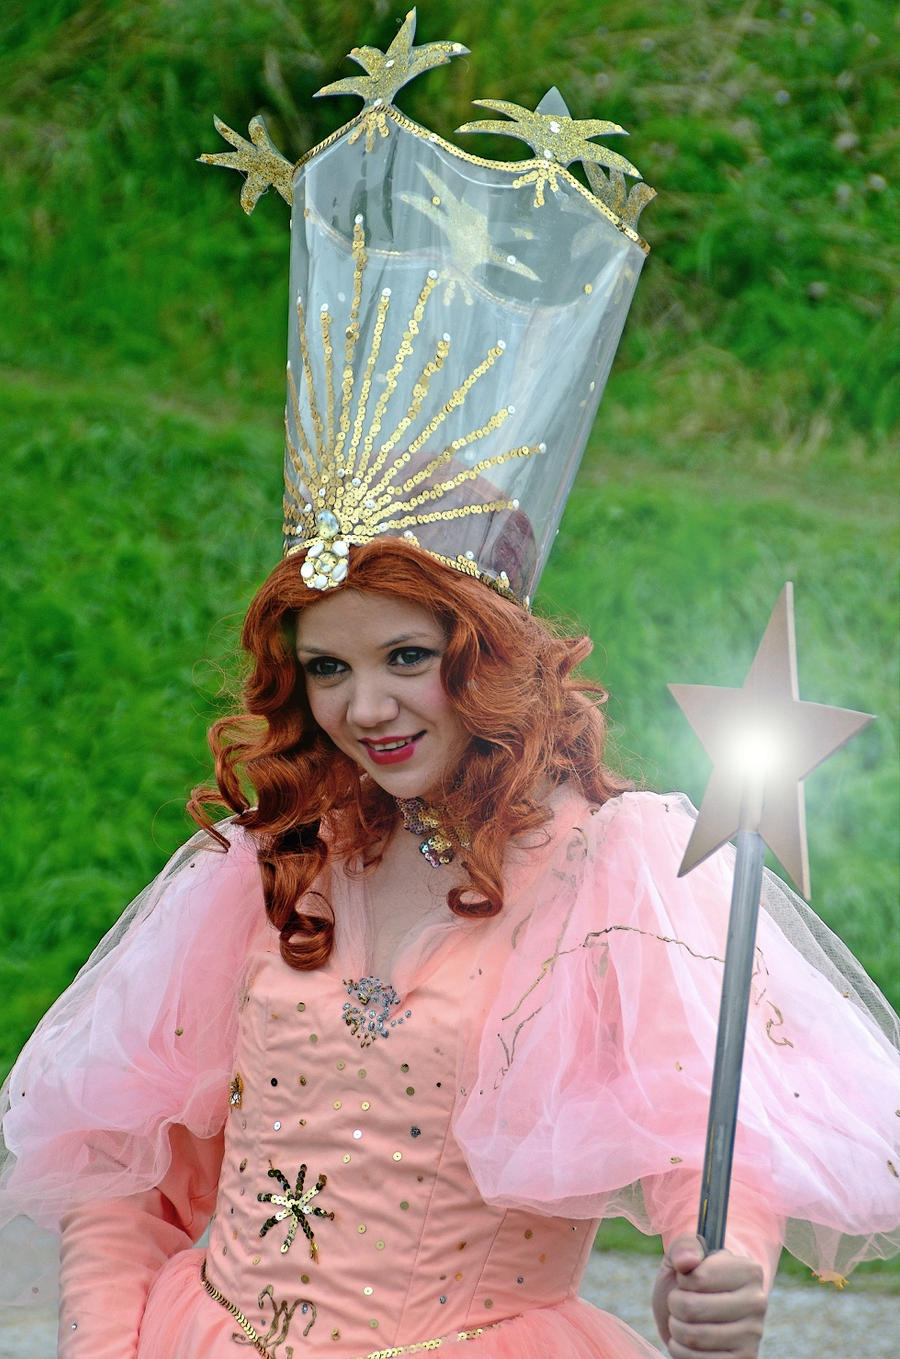 Glinda the Good Witch of the North at Tutbury by masimageGood Witch Of The North